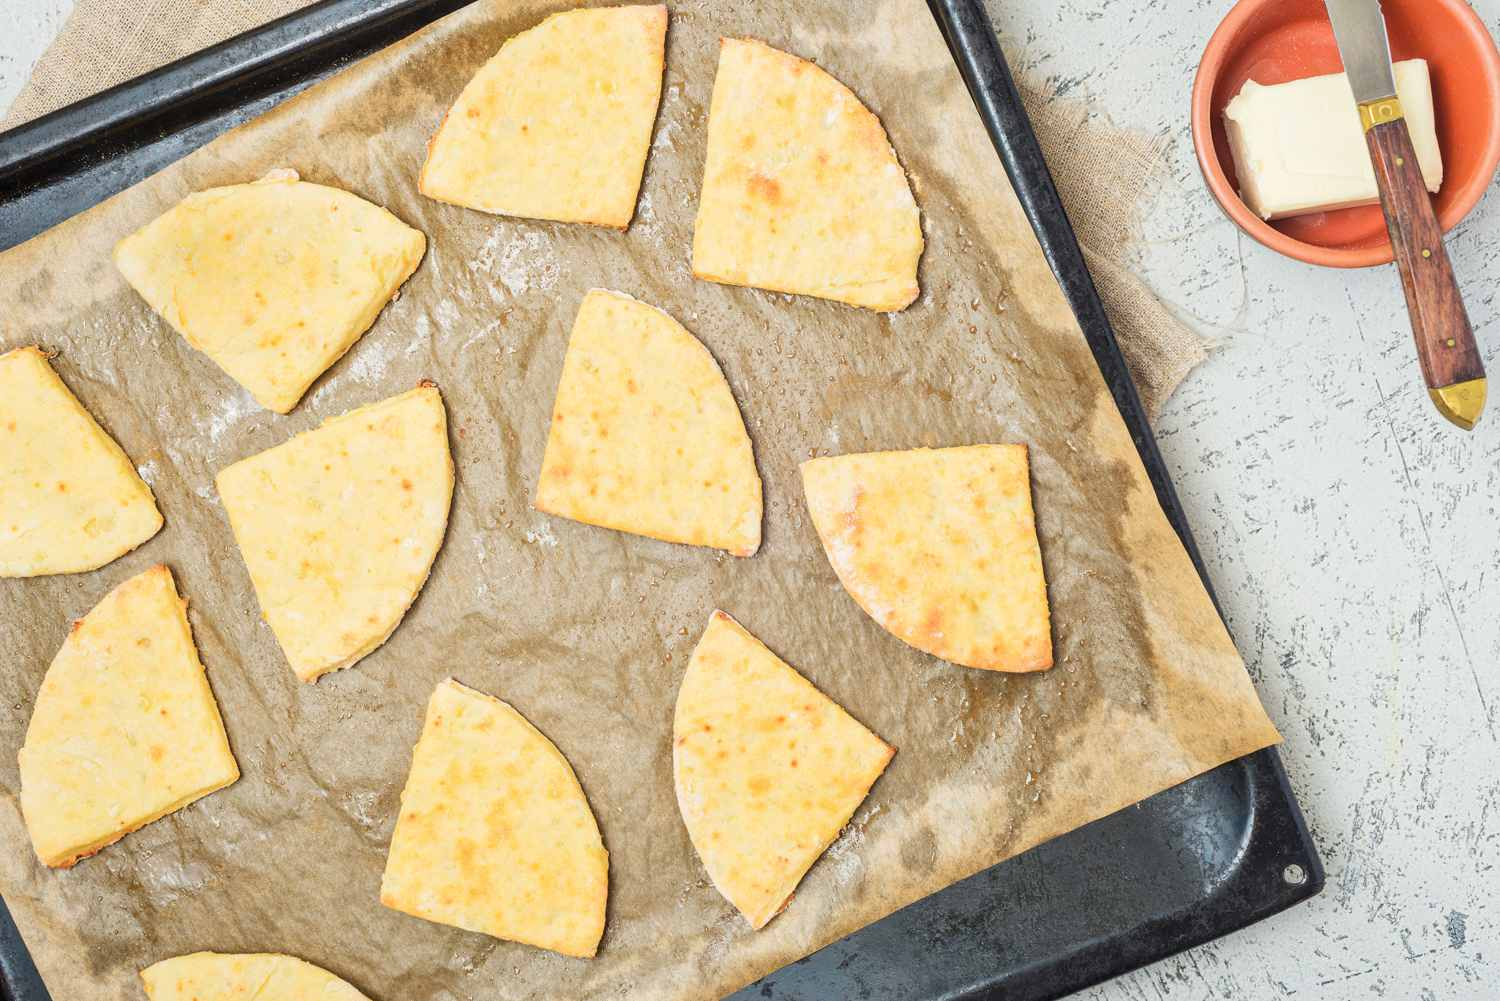 Baked Tattie scones on a baking sheet with parchment